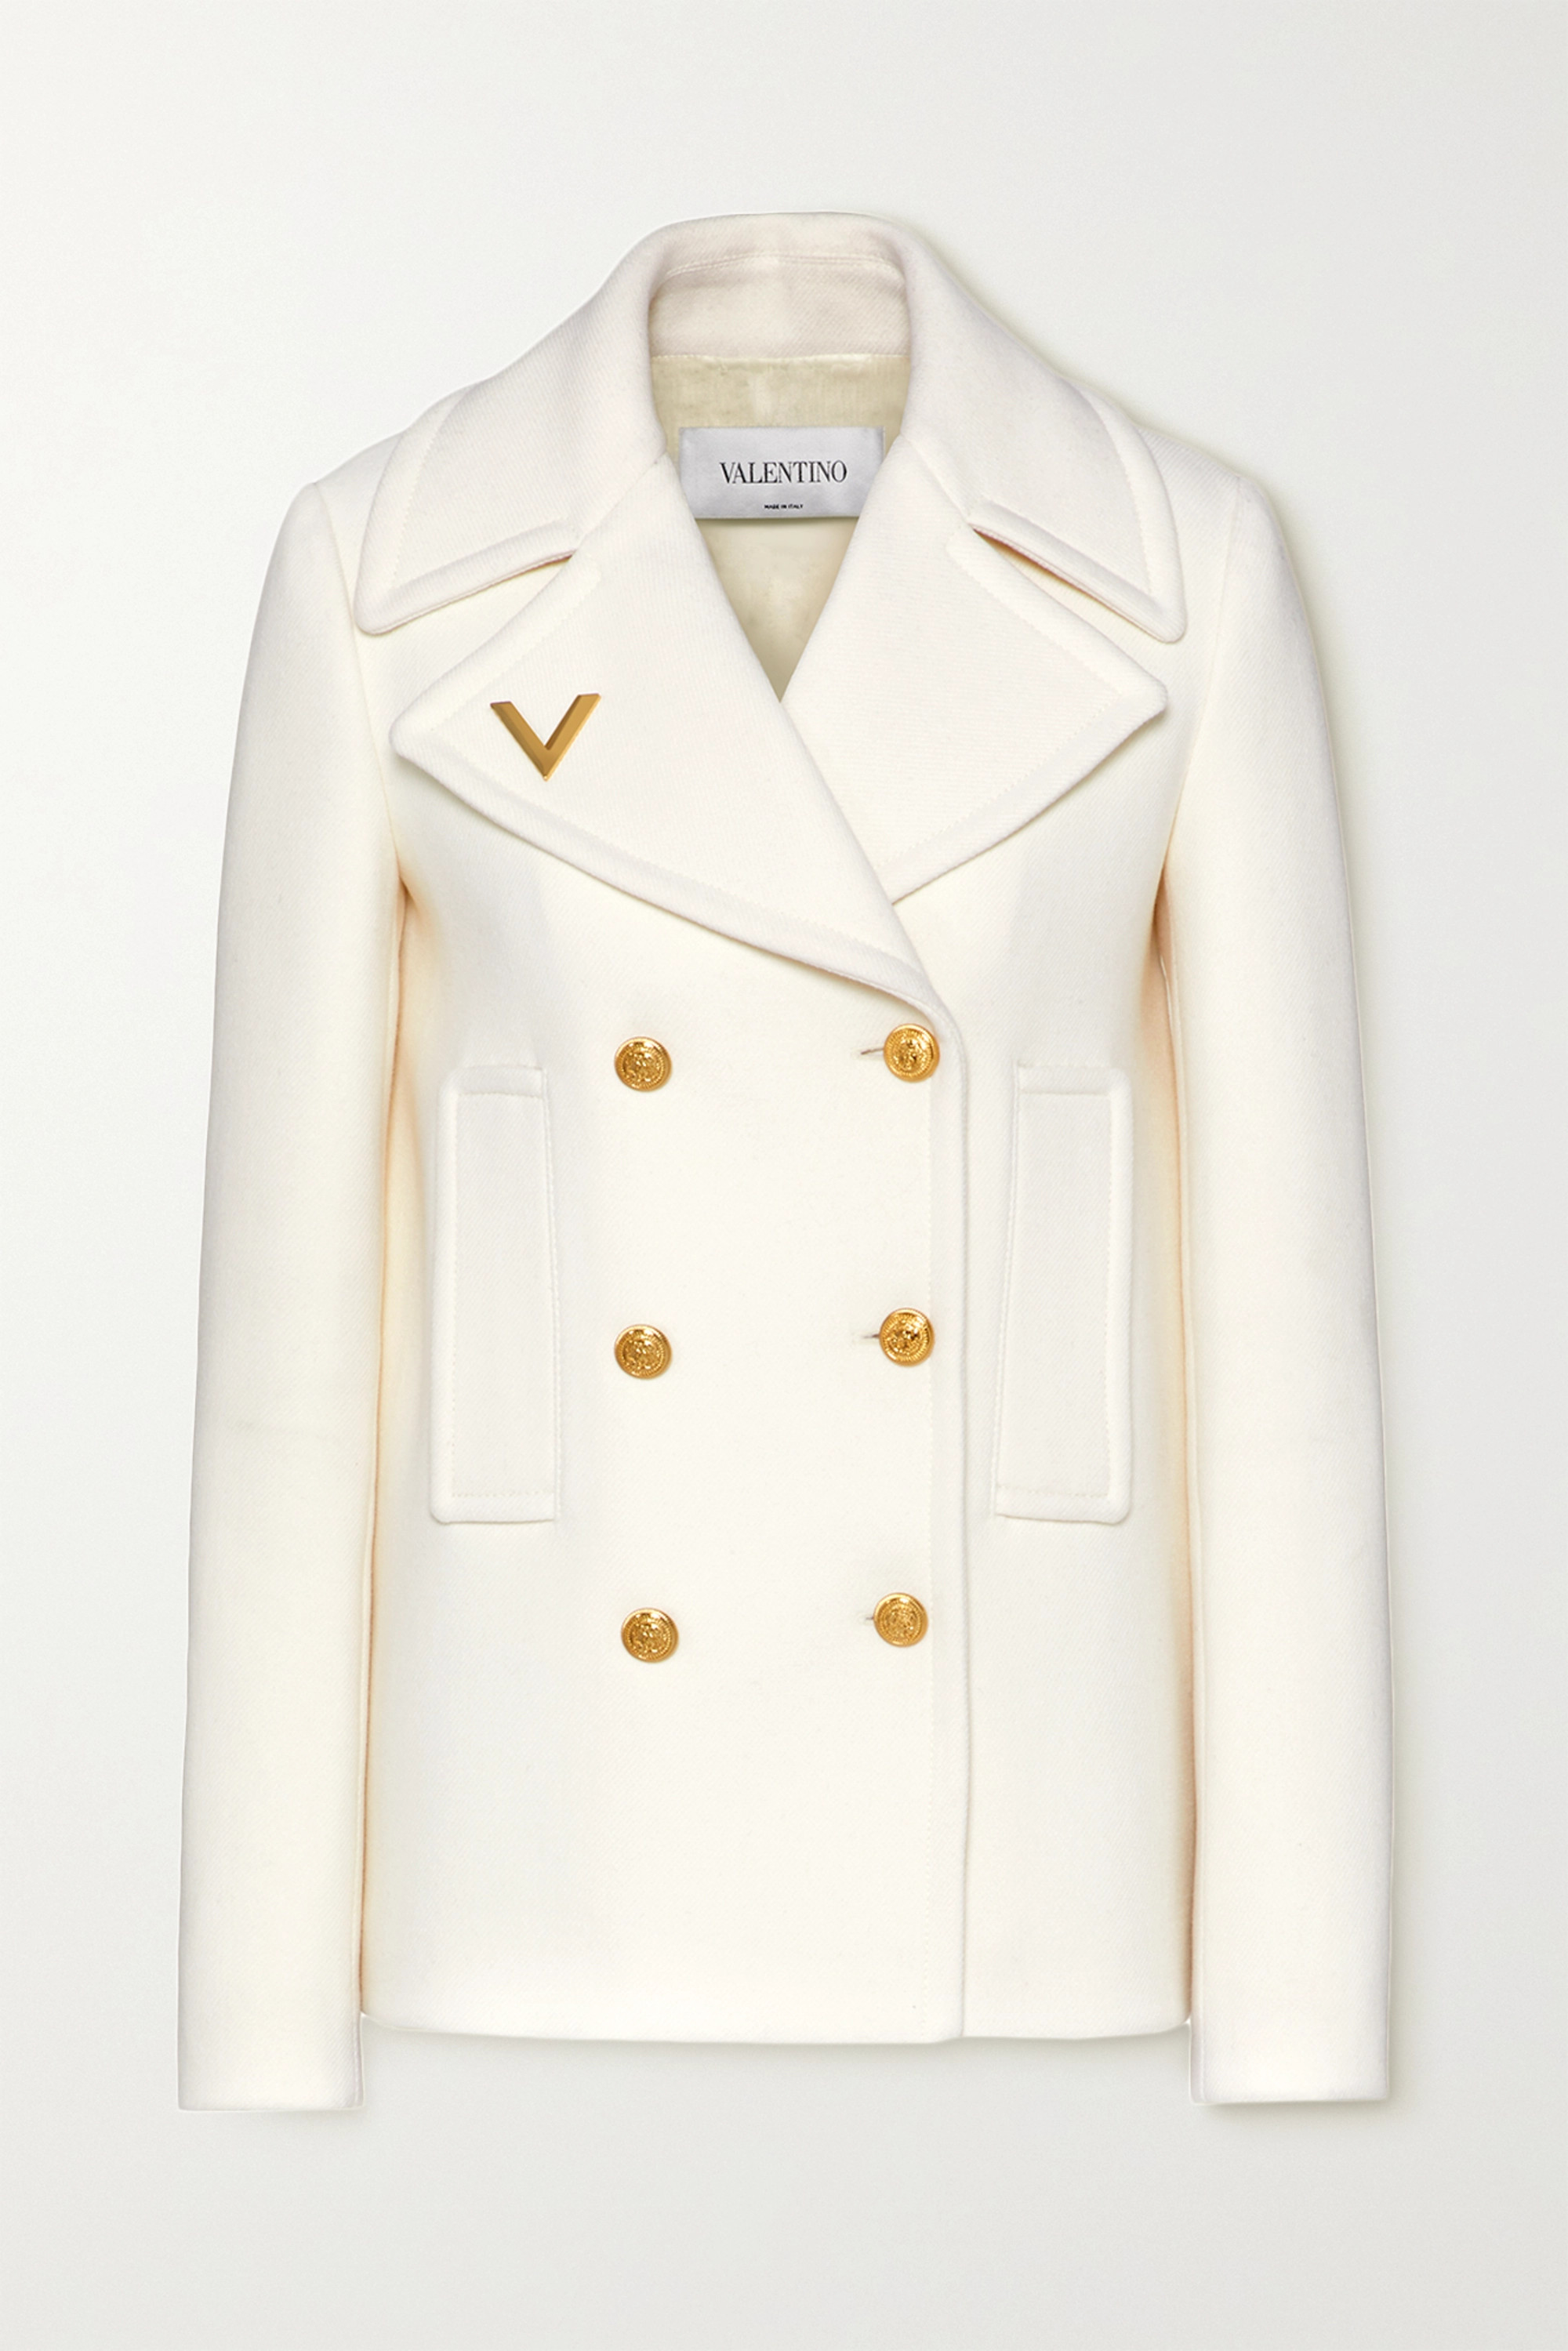 Valentino Embellished double-breasted wool coat